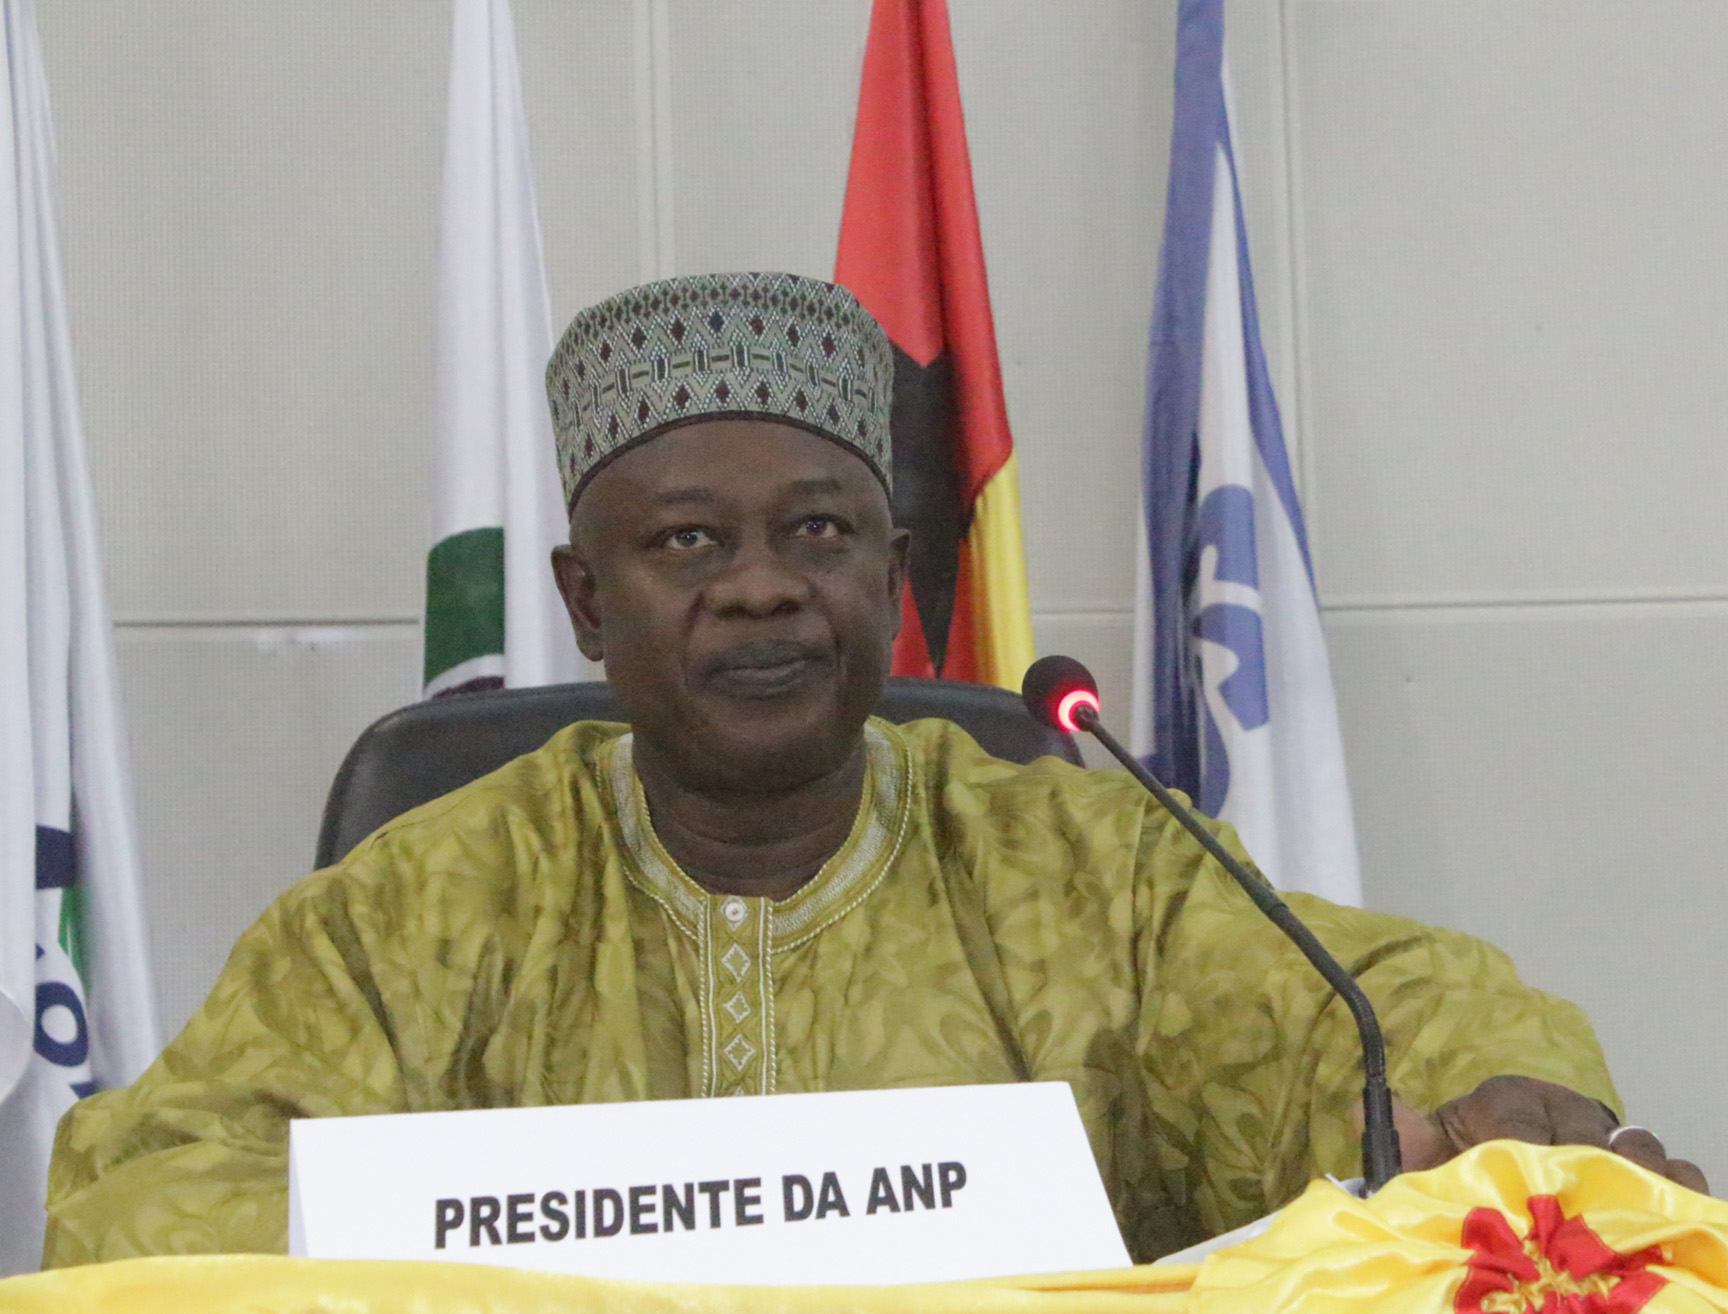 Secretary General's message to the Speaker of Guinea Bissau